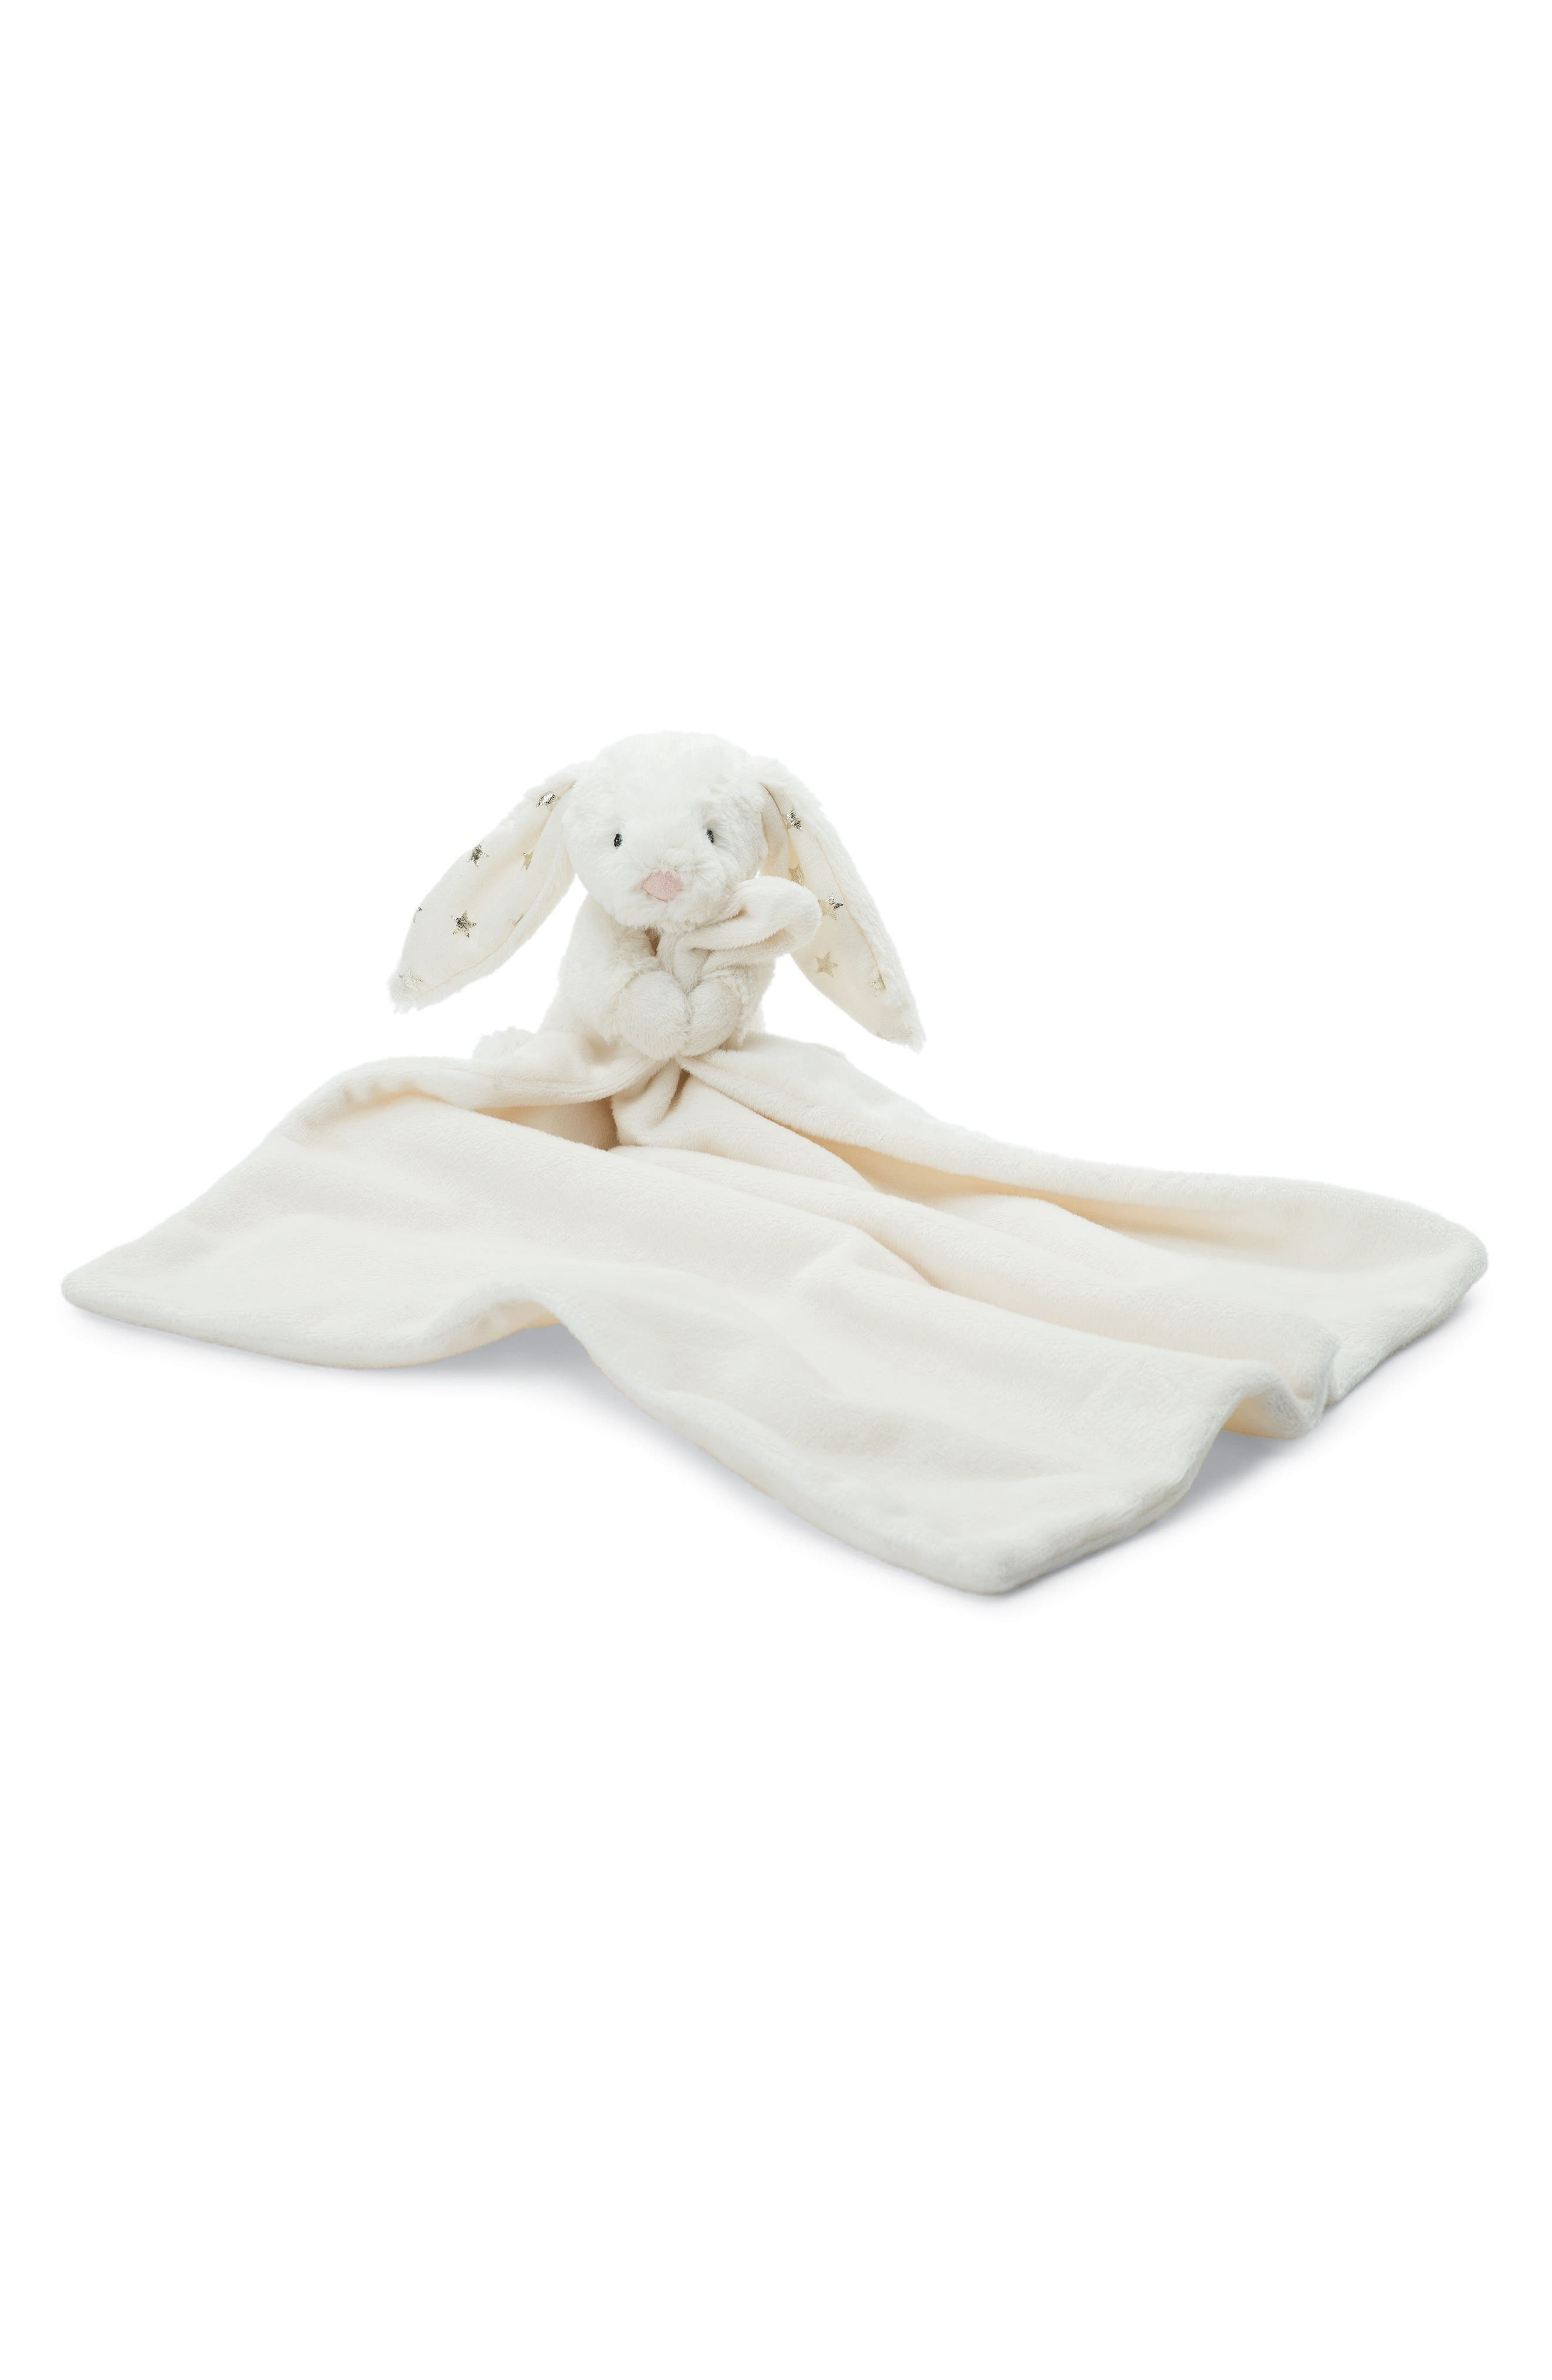 Jellycat Twinkle Bunny Soother Blanket